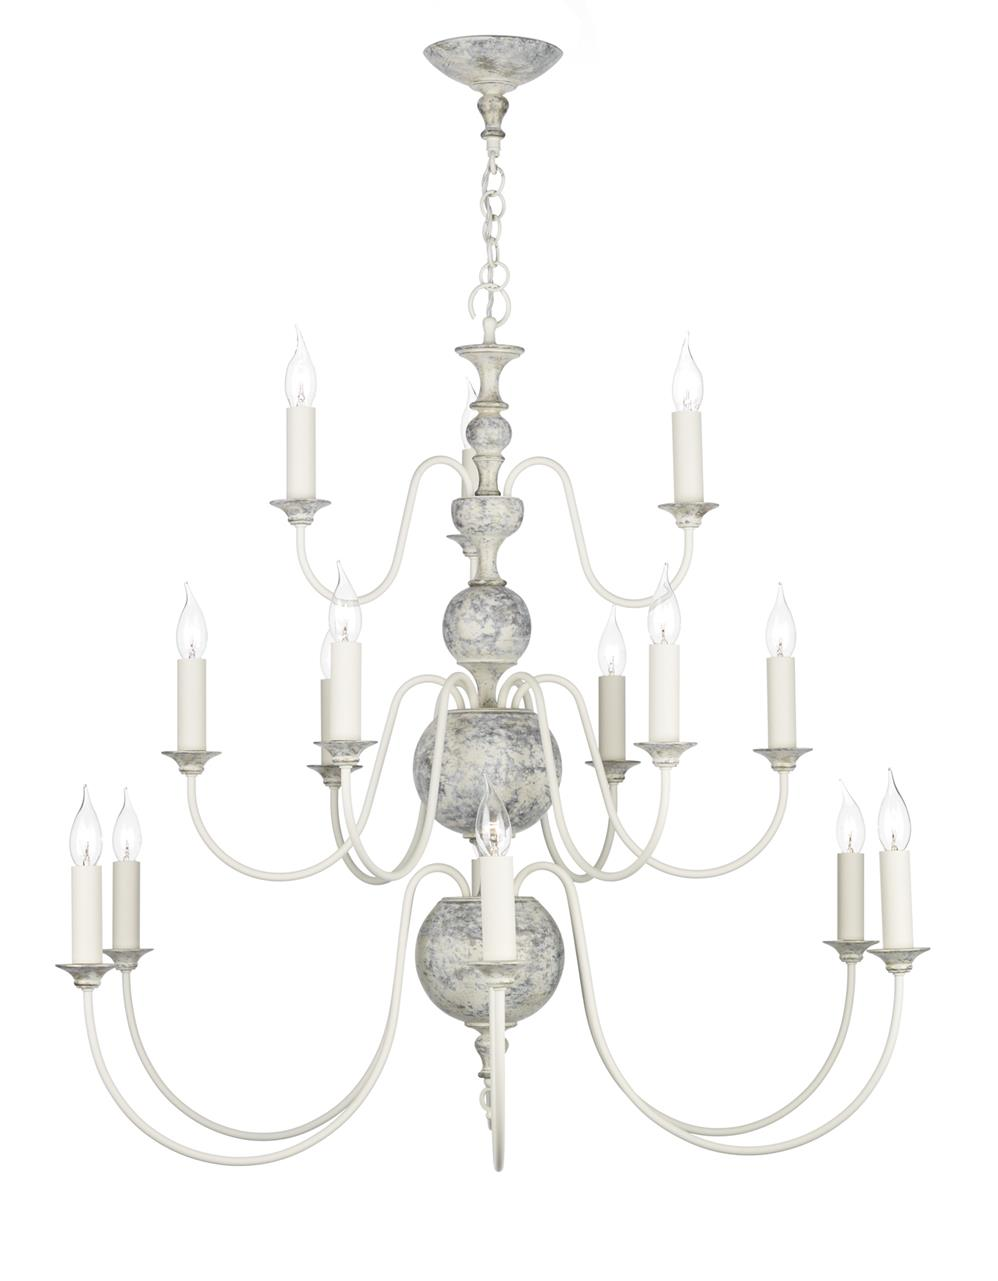 David Hunt Lighting FLE1512 Flemish 15 Light Pendant in distressed powder grey/cream &  gold (Fitting Only)